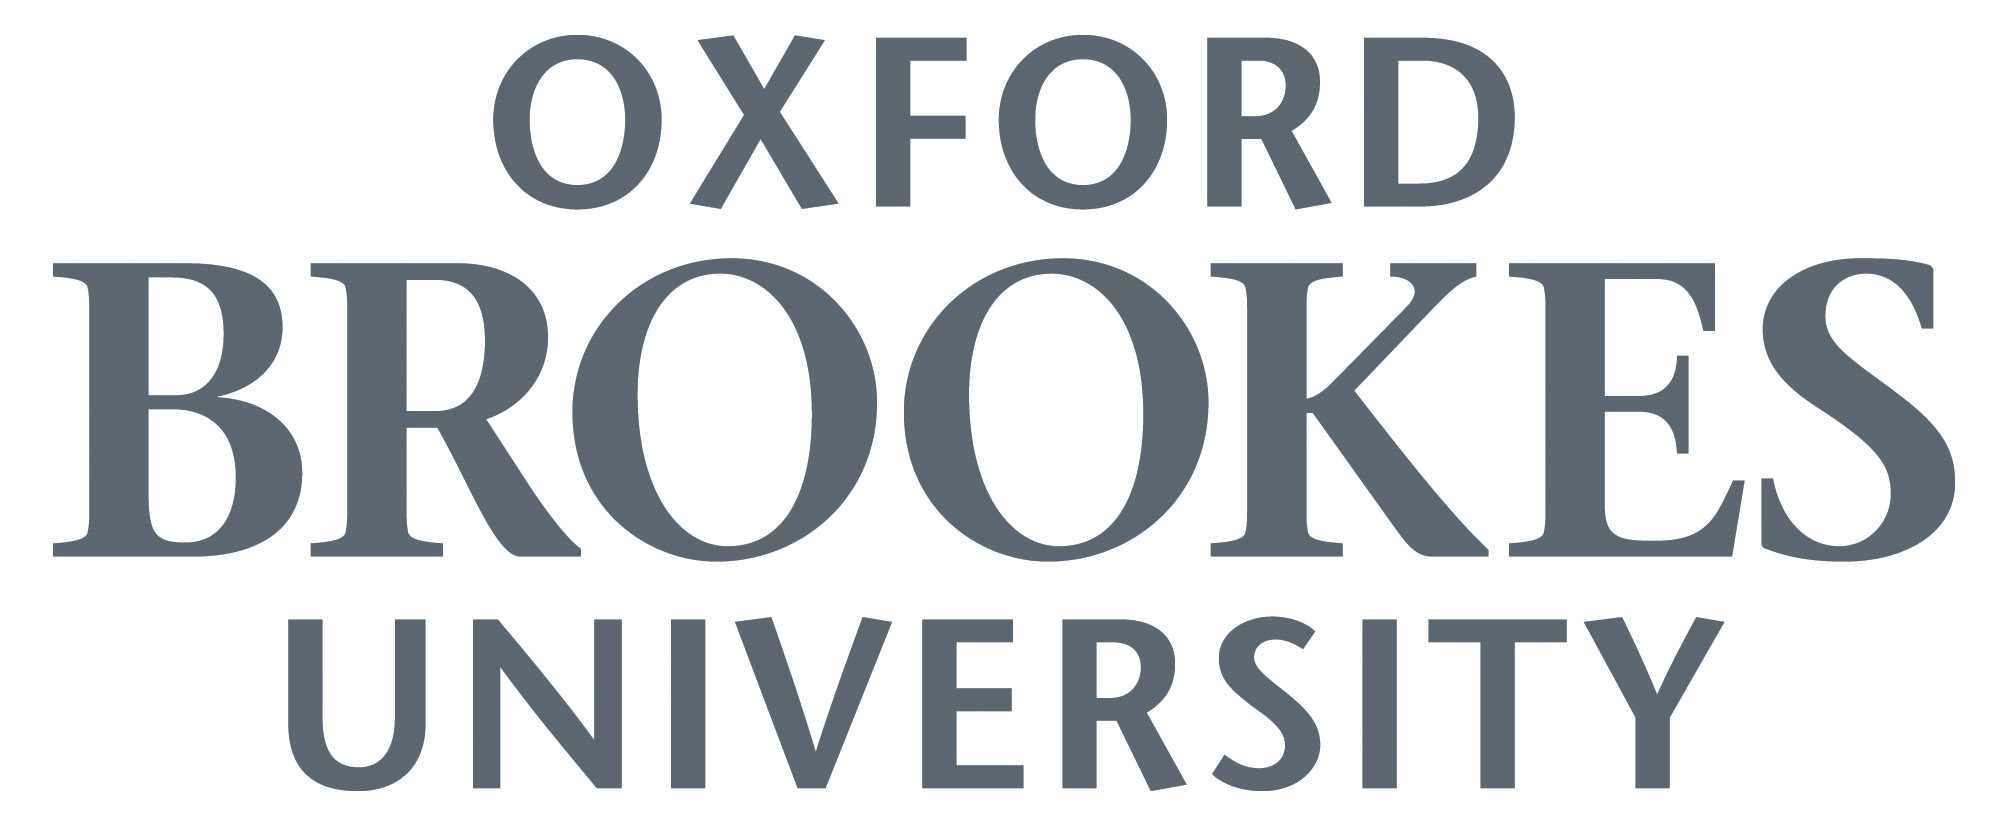 Oxford-Brookes-University